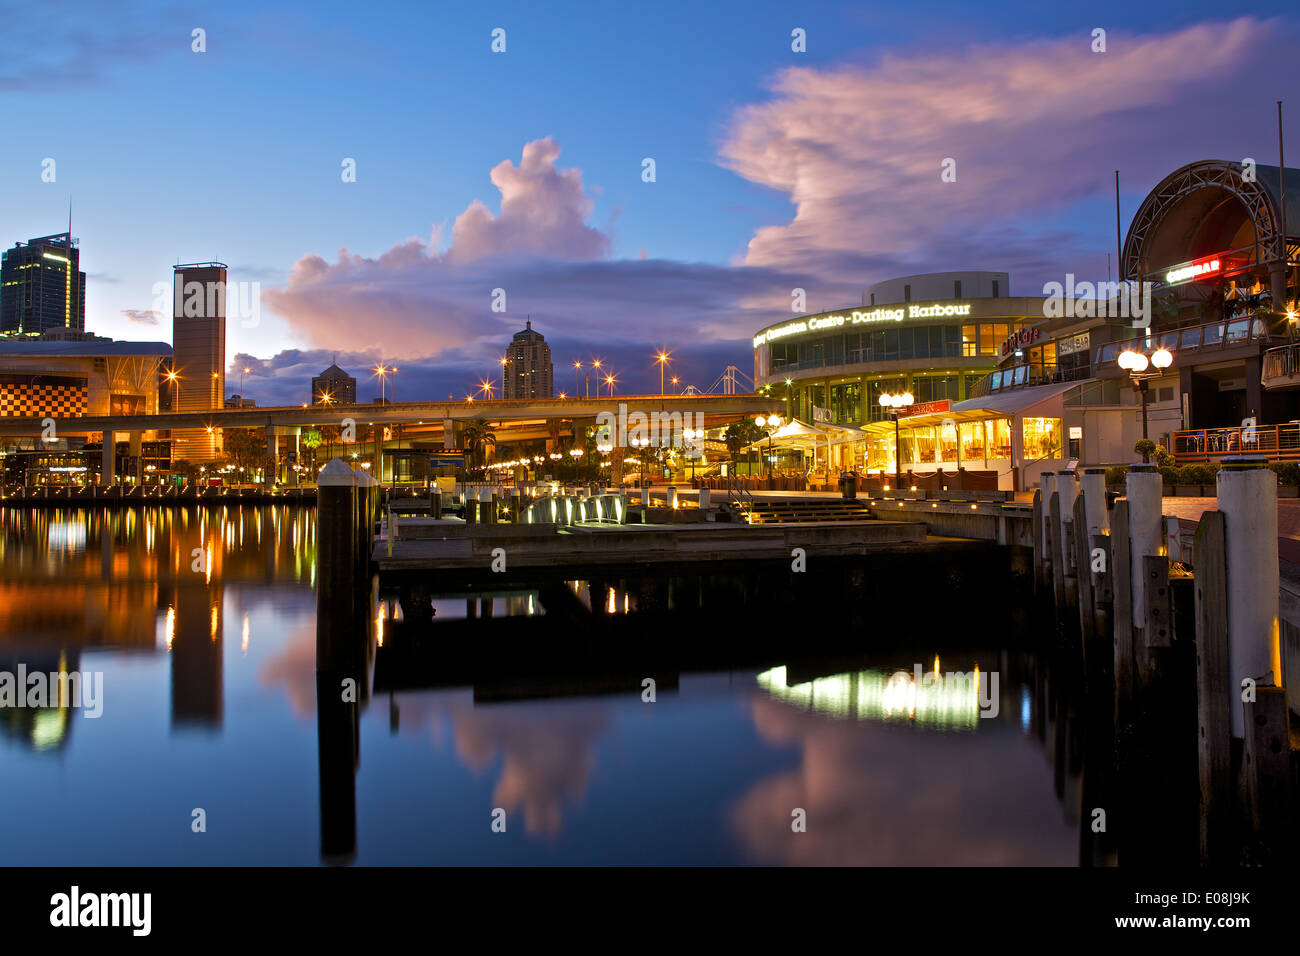 Dawn breaks over a stormy sky in Darling Harbour, Sydney, Australia. - Stock Image